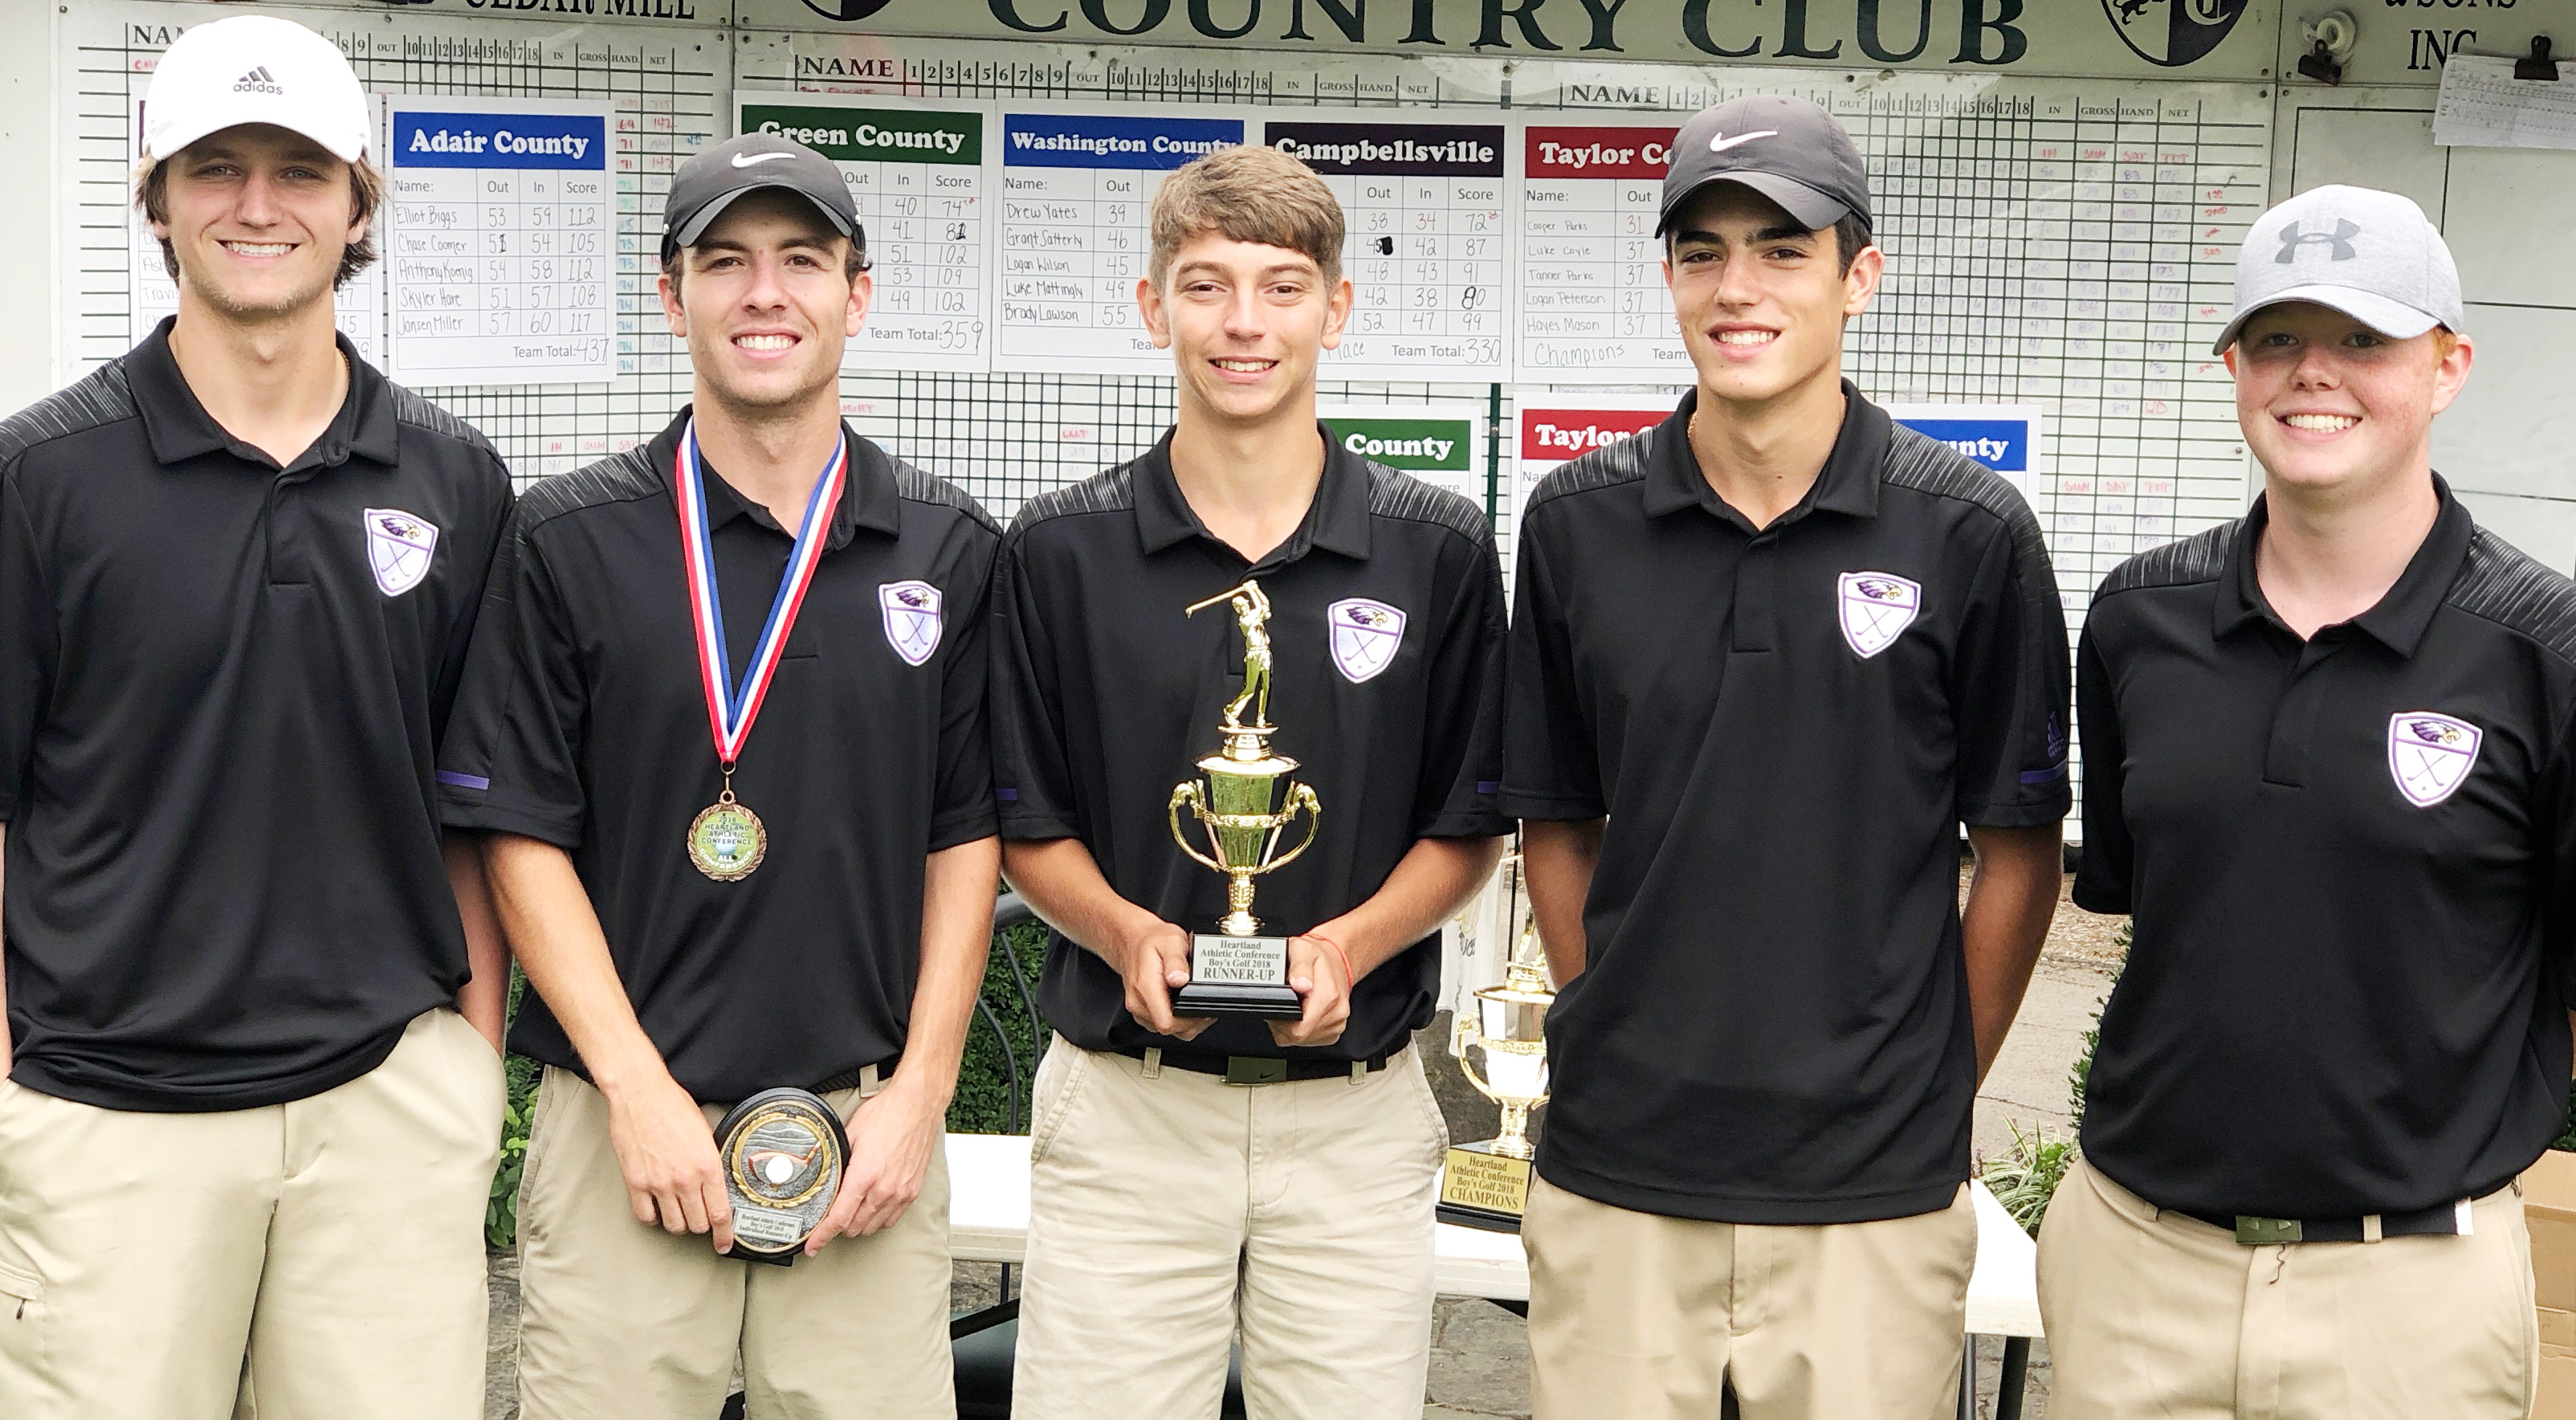 CHS boys' golf team is runners-up in this year's Heartland Conference tournament. From left are seniors Myles Murrell, Layton Hord and Casey Hardin and sophomores Kameron Smith and Colin Harris. Hord was the runner-up in the individual competition and named to the all-conference team.